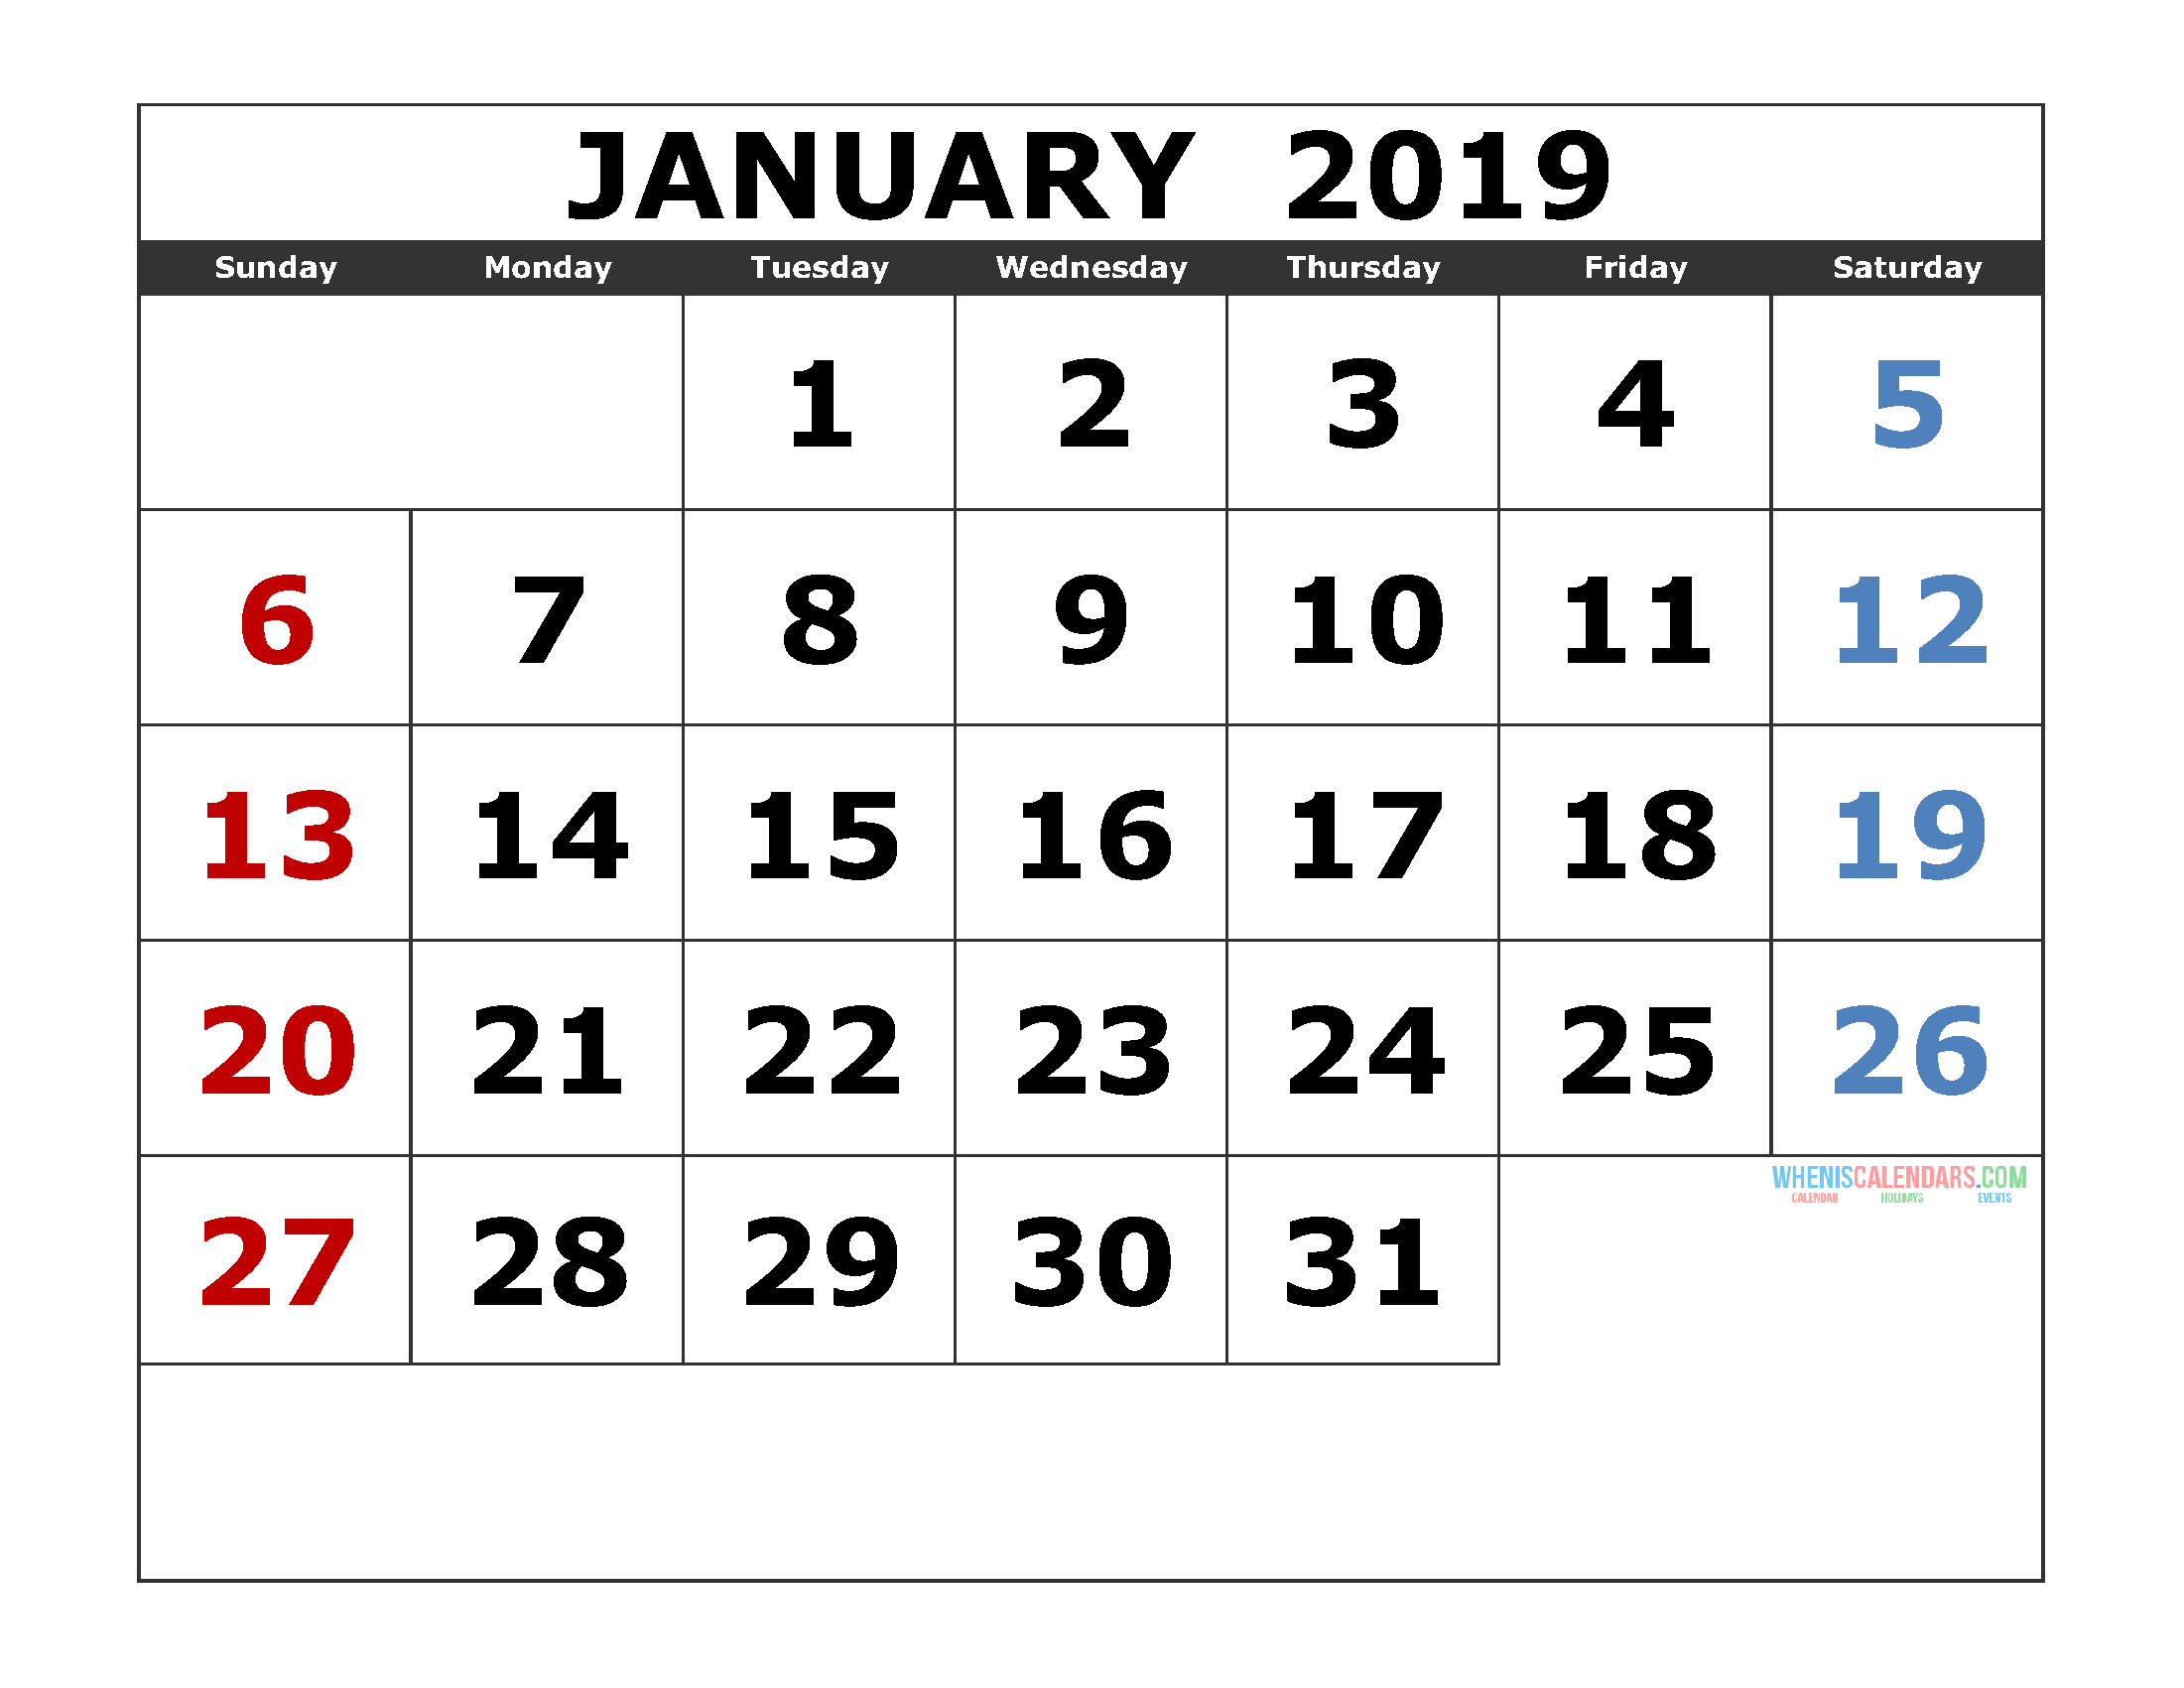 January 2019 Printable Calendar Template Excel, PDF, Image